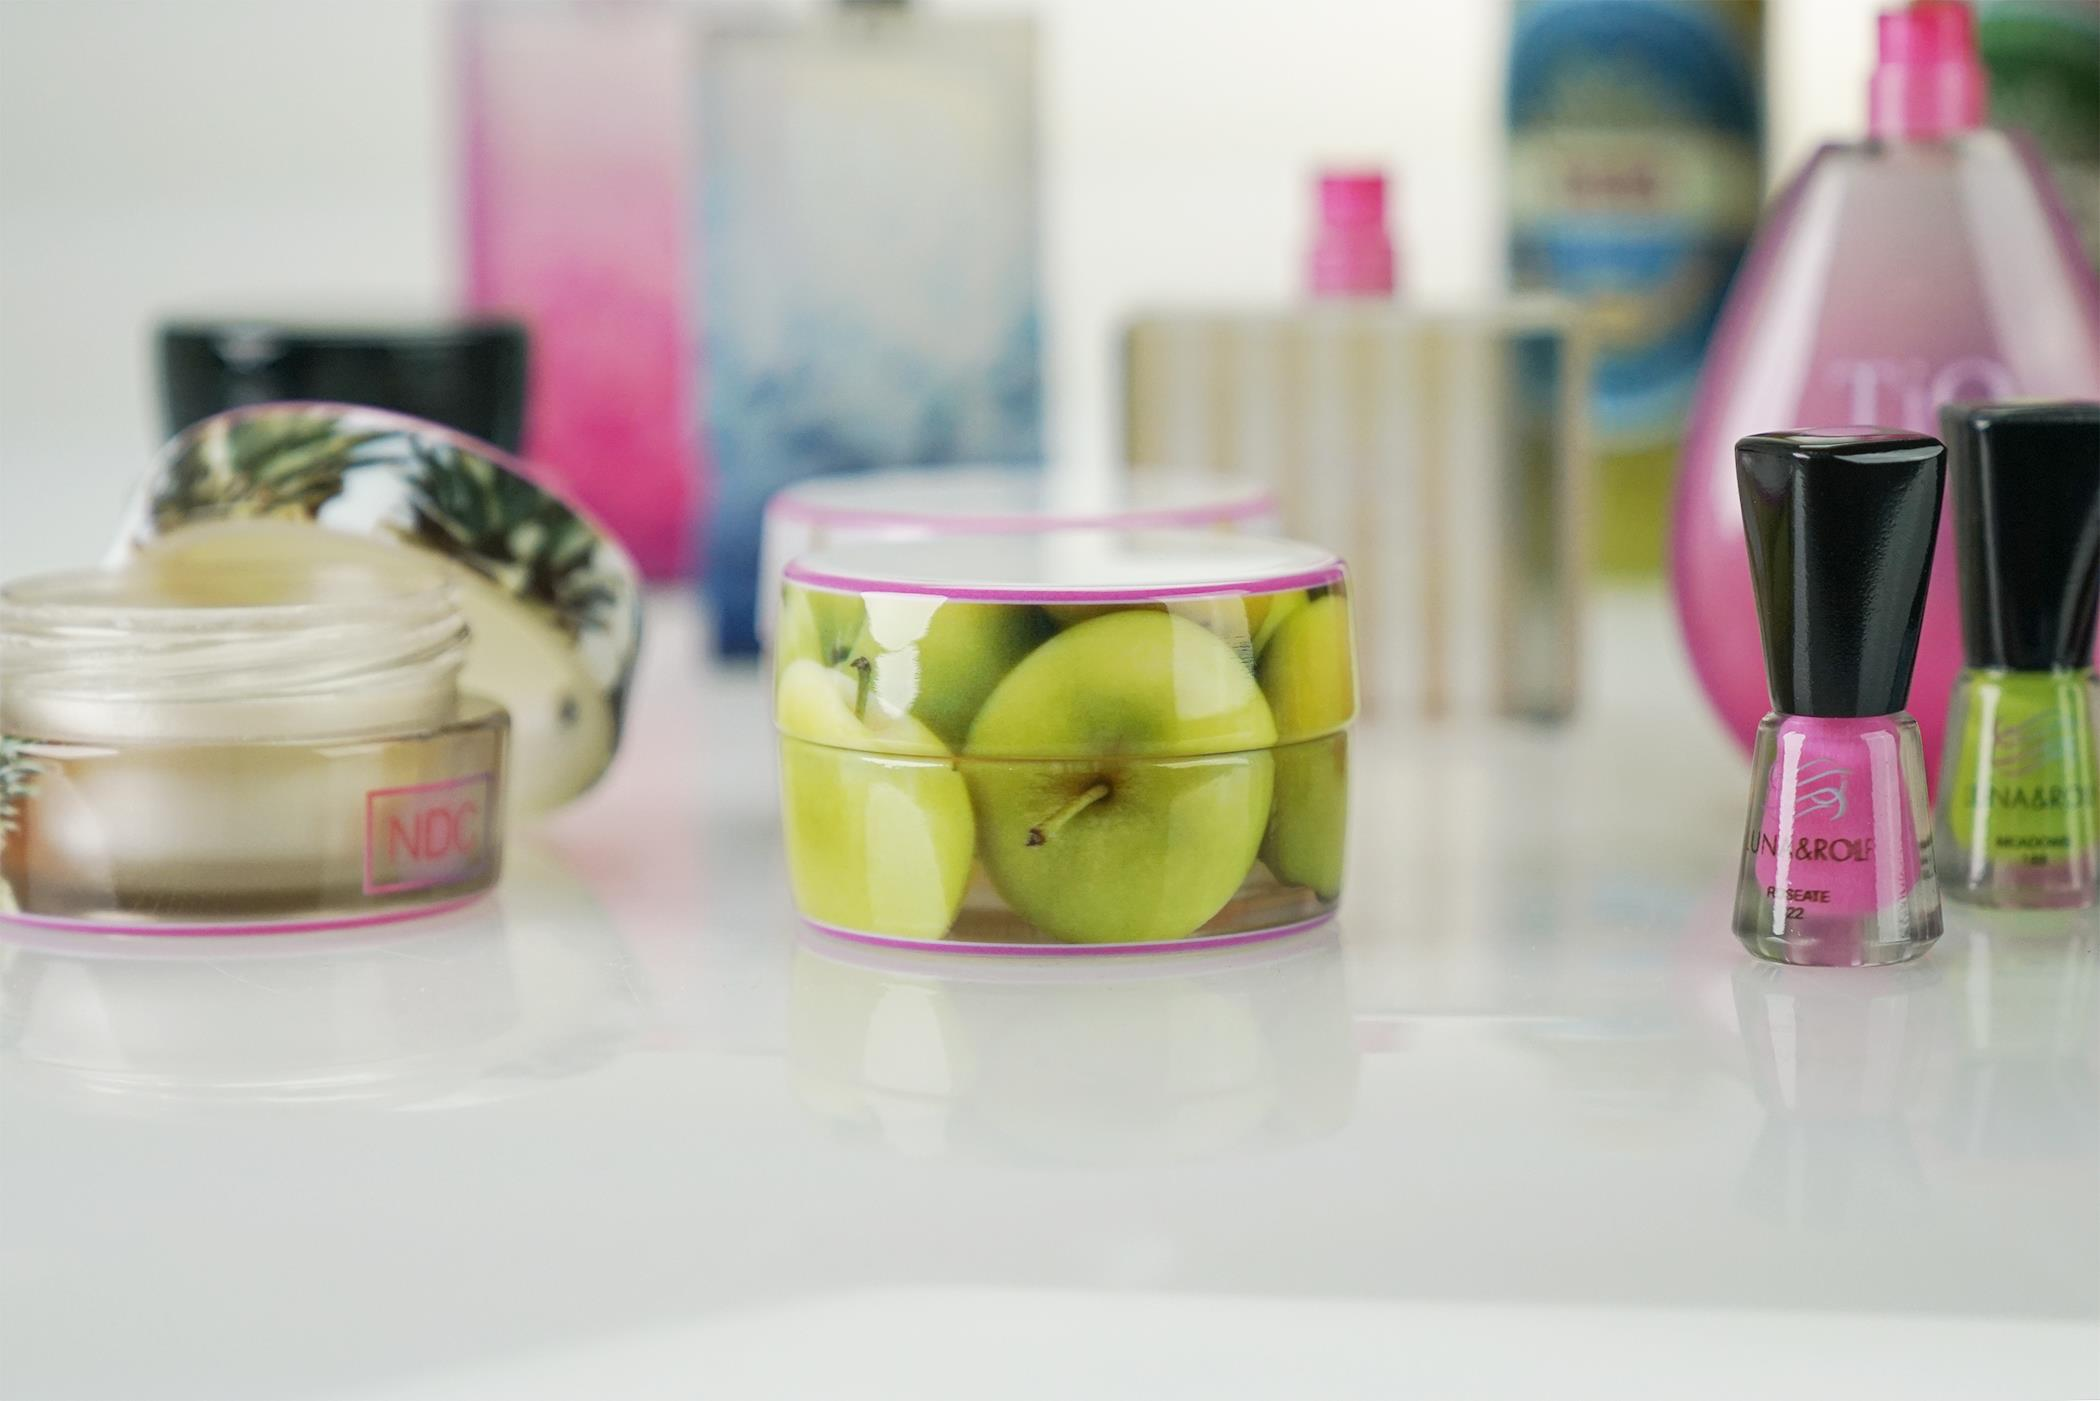 Learn how these cosmetic containers relate to manufactoring technologies